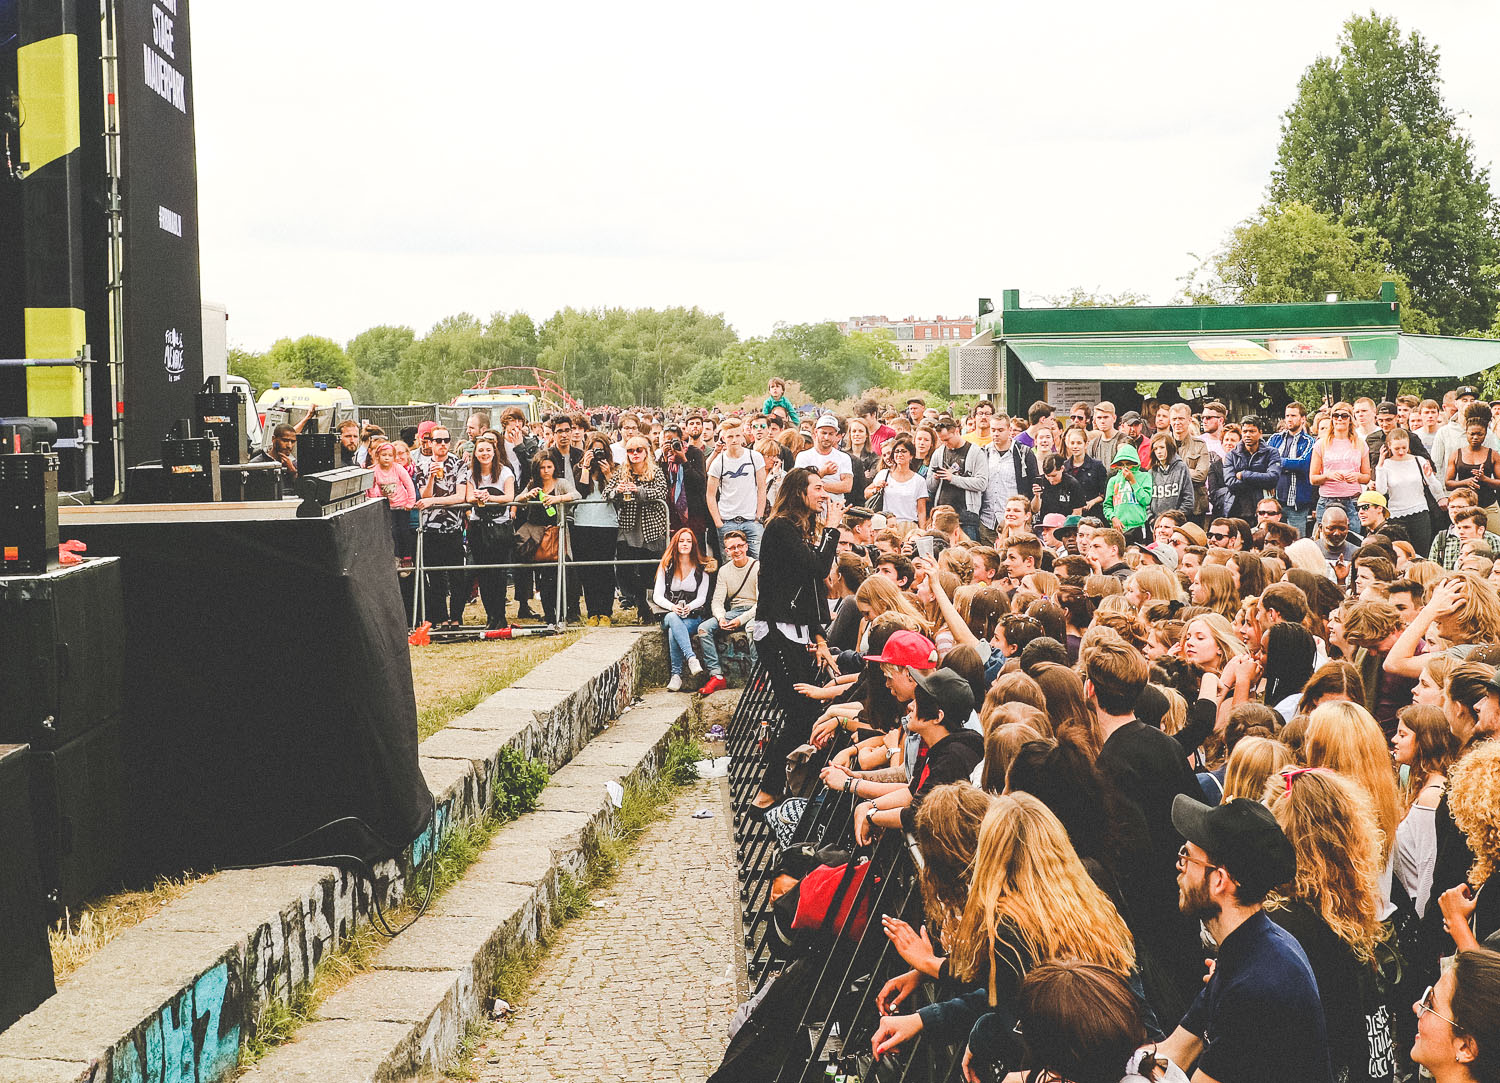 kindness-2015-rbma-berlin-mauerpark-06